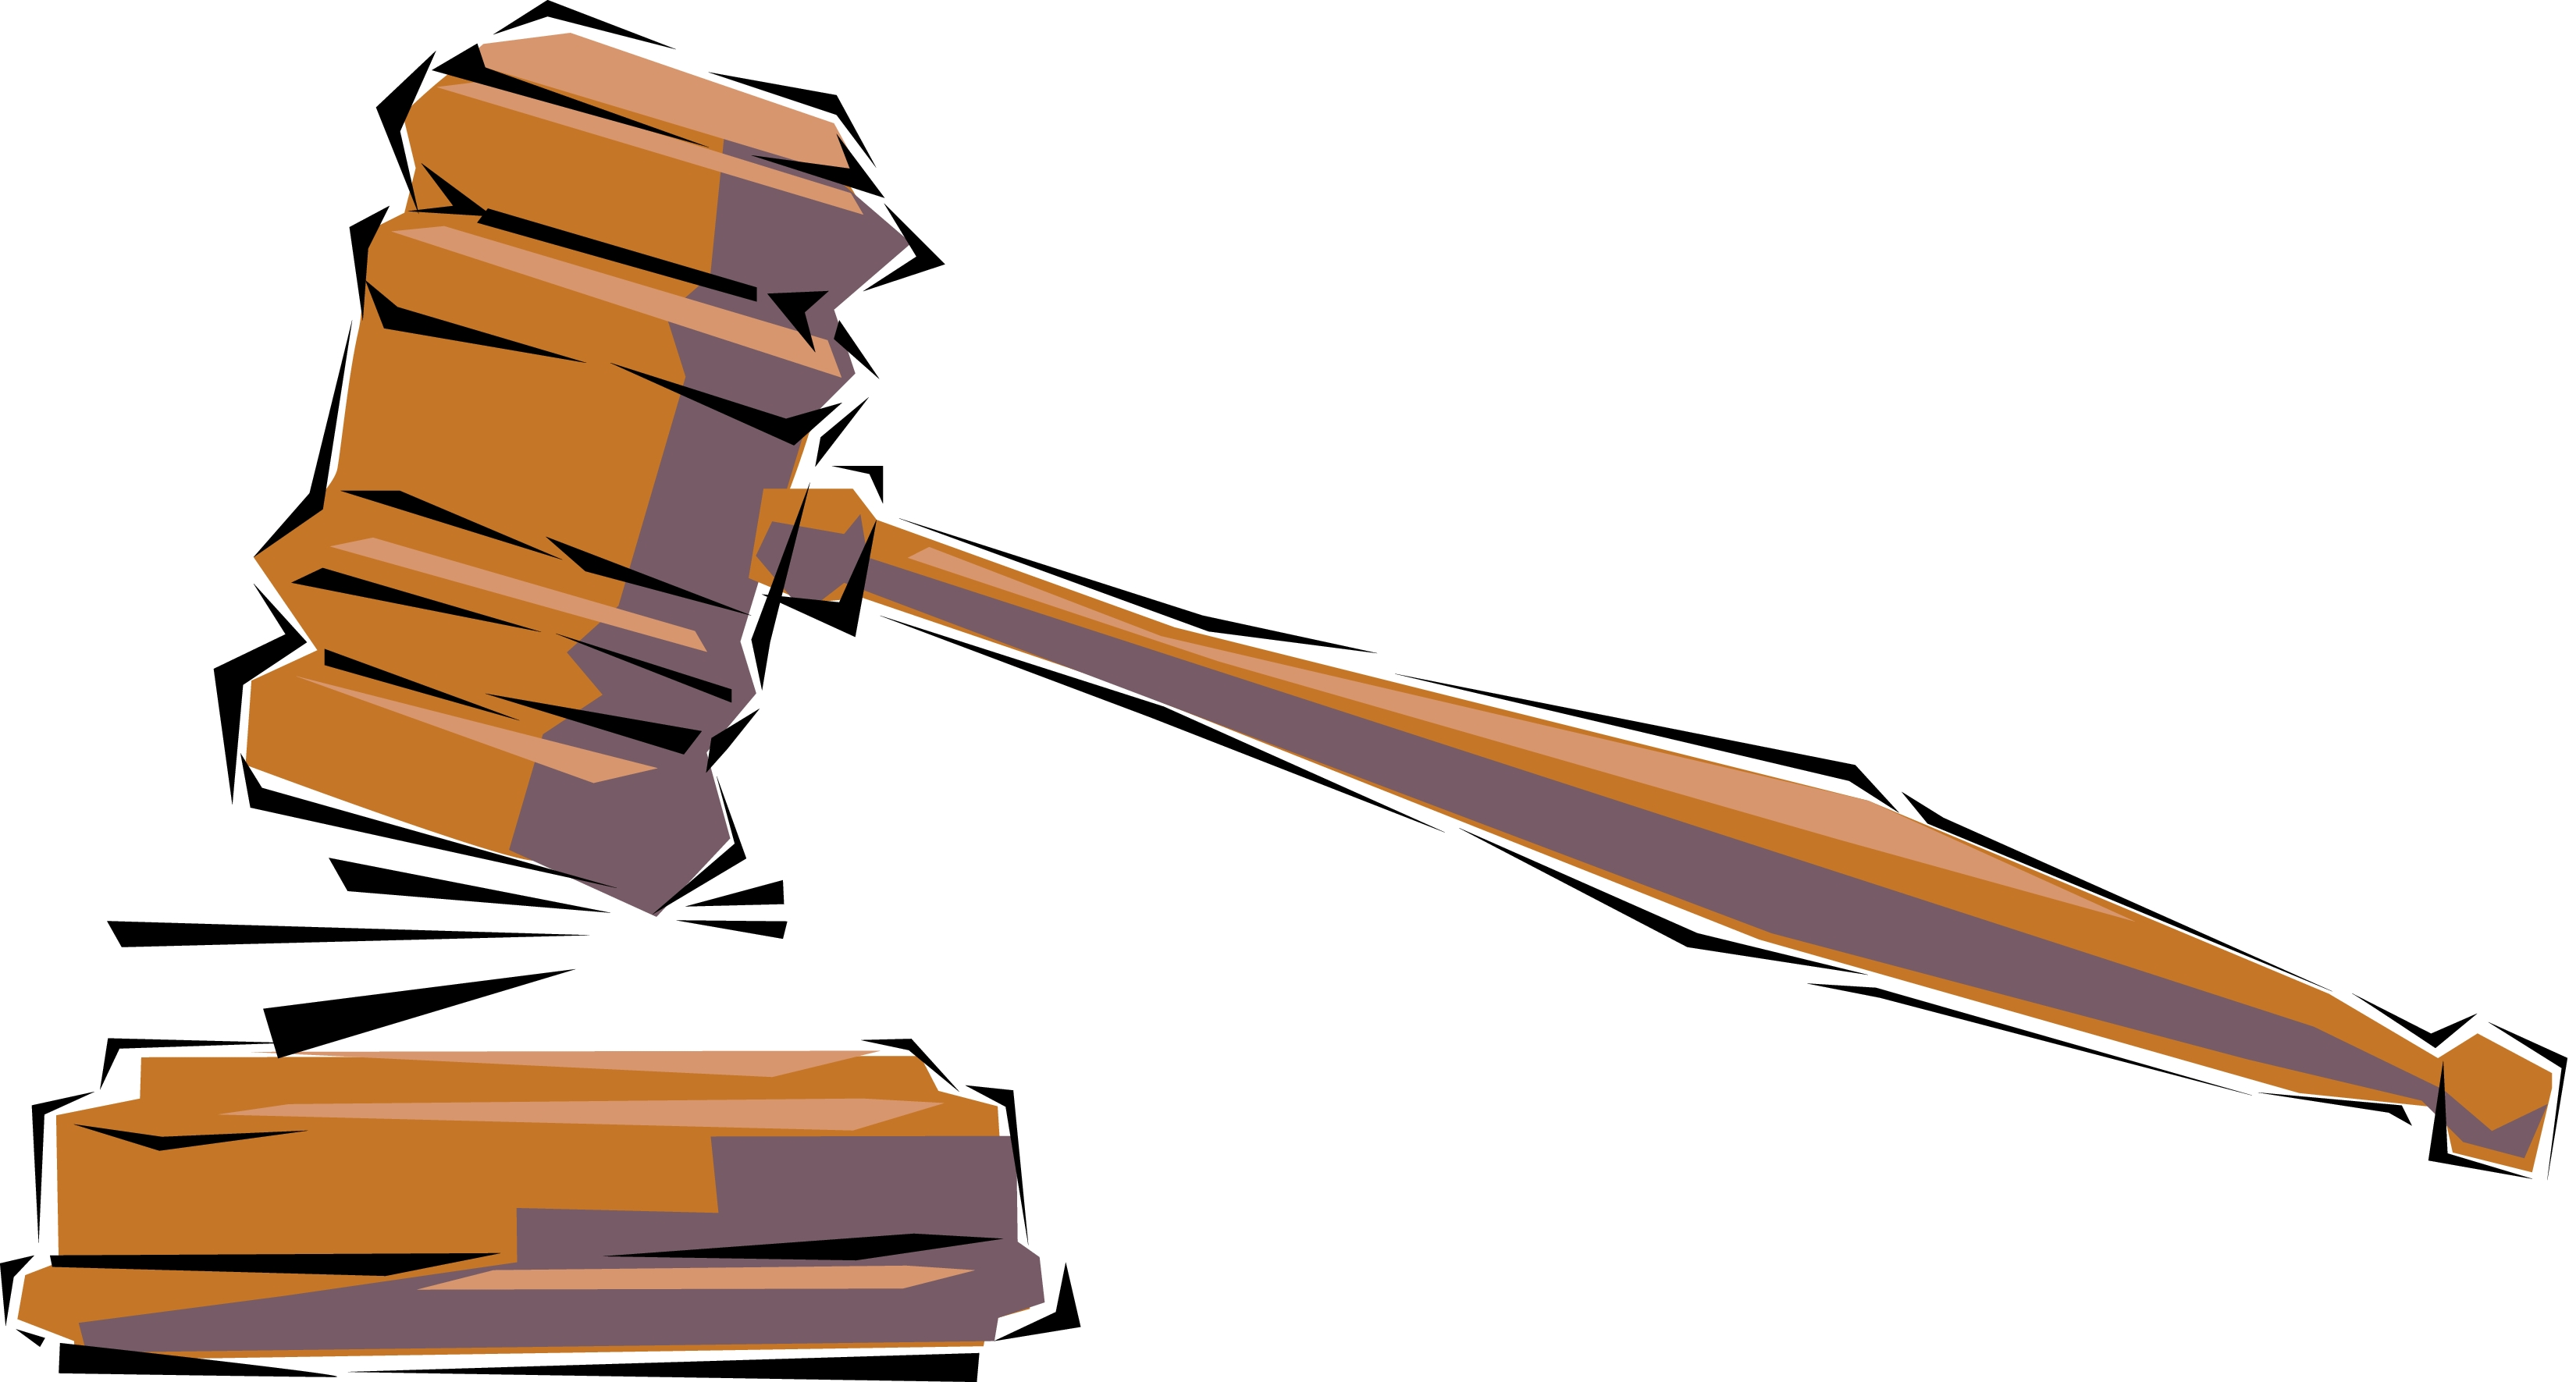 Court Gavel Cliparts